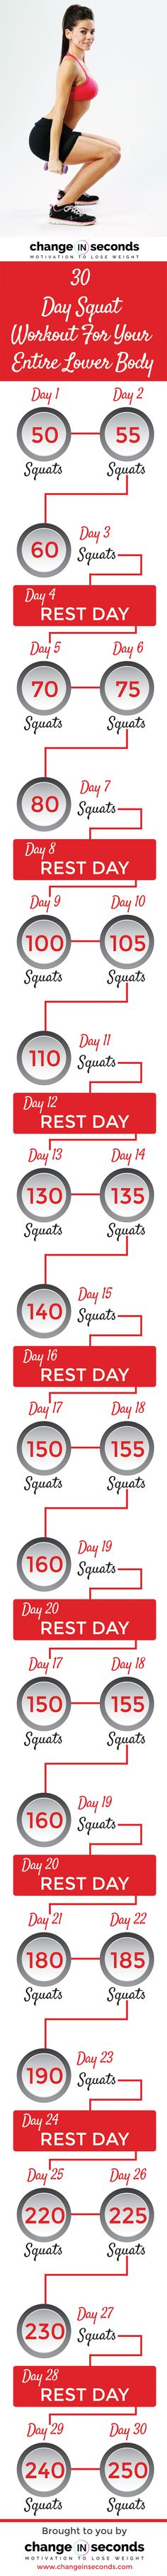 30 Day Squat Workout For Your Entire Lower Body (Download PDF)